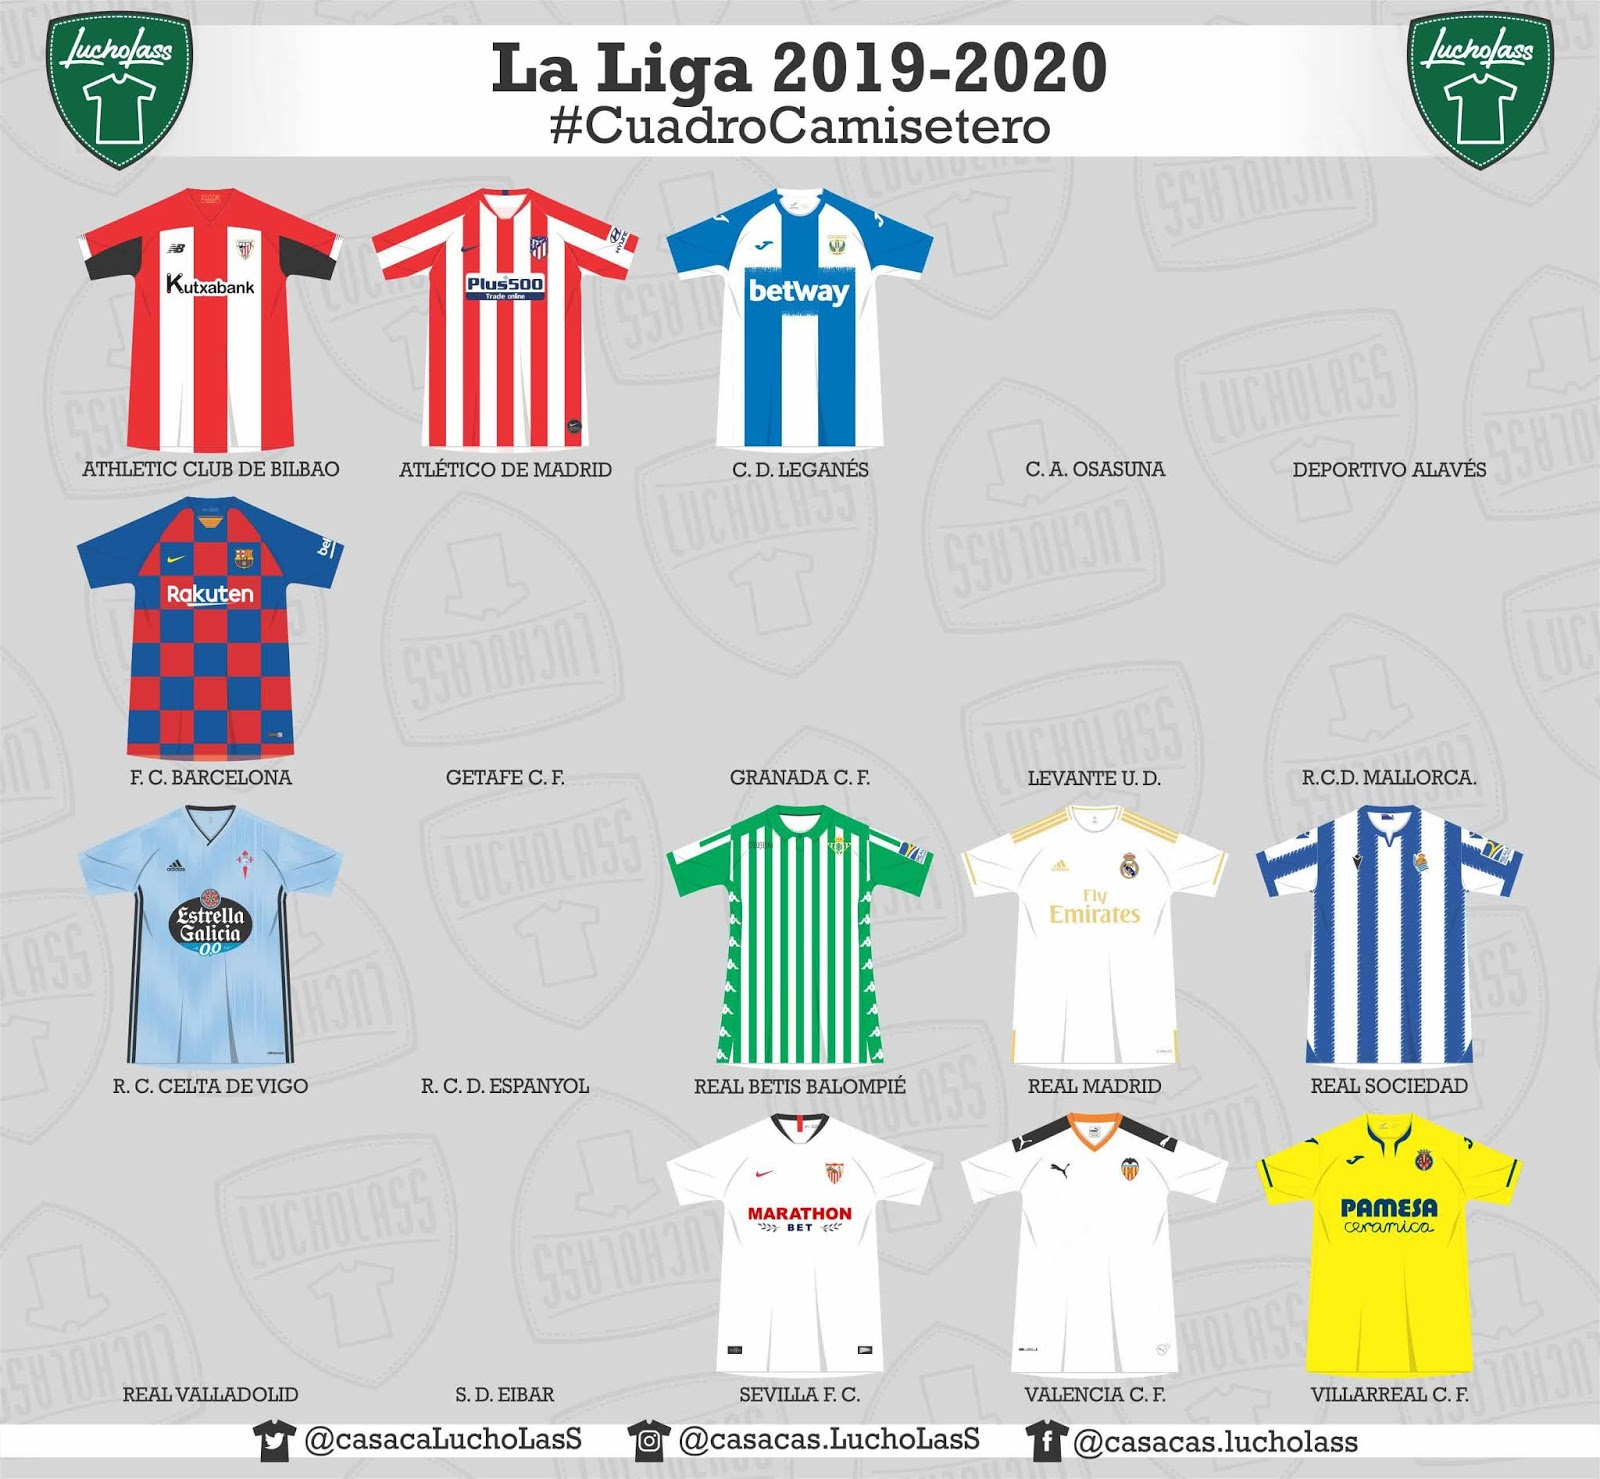 1bed1f2caa9 Madrid-based football kit illustrator Casacas LuchoLasS created a nice  graphic featuring all 2019-2020 La Liga home kits.